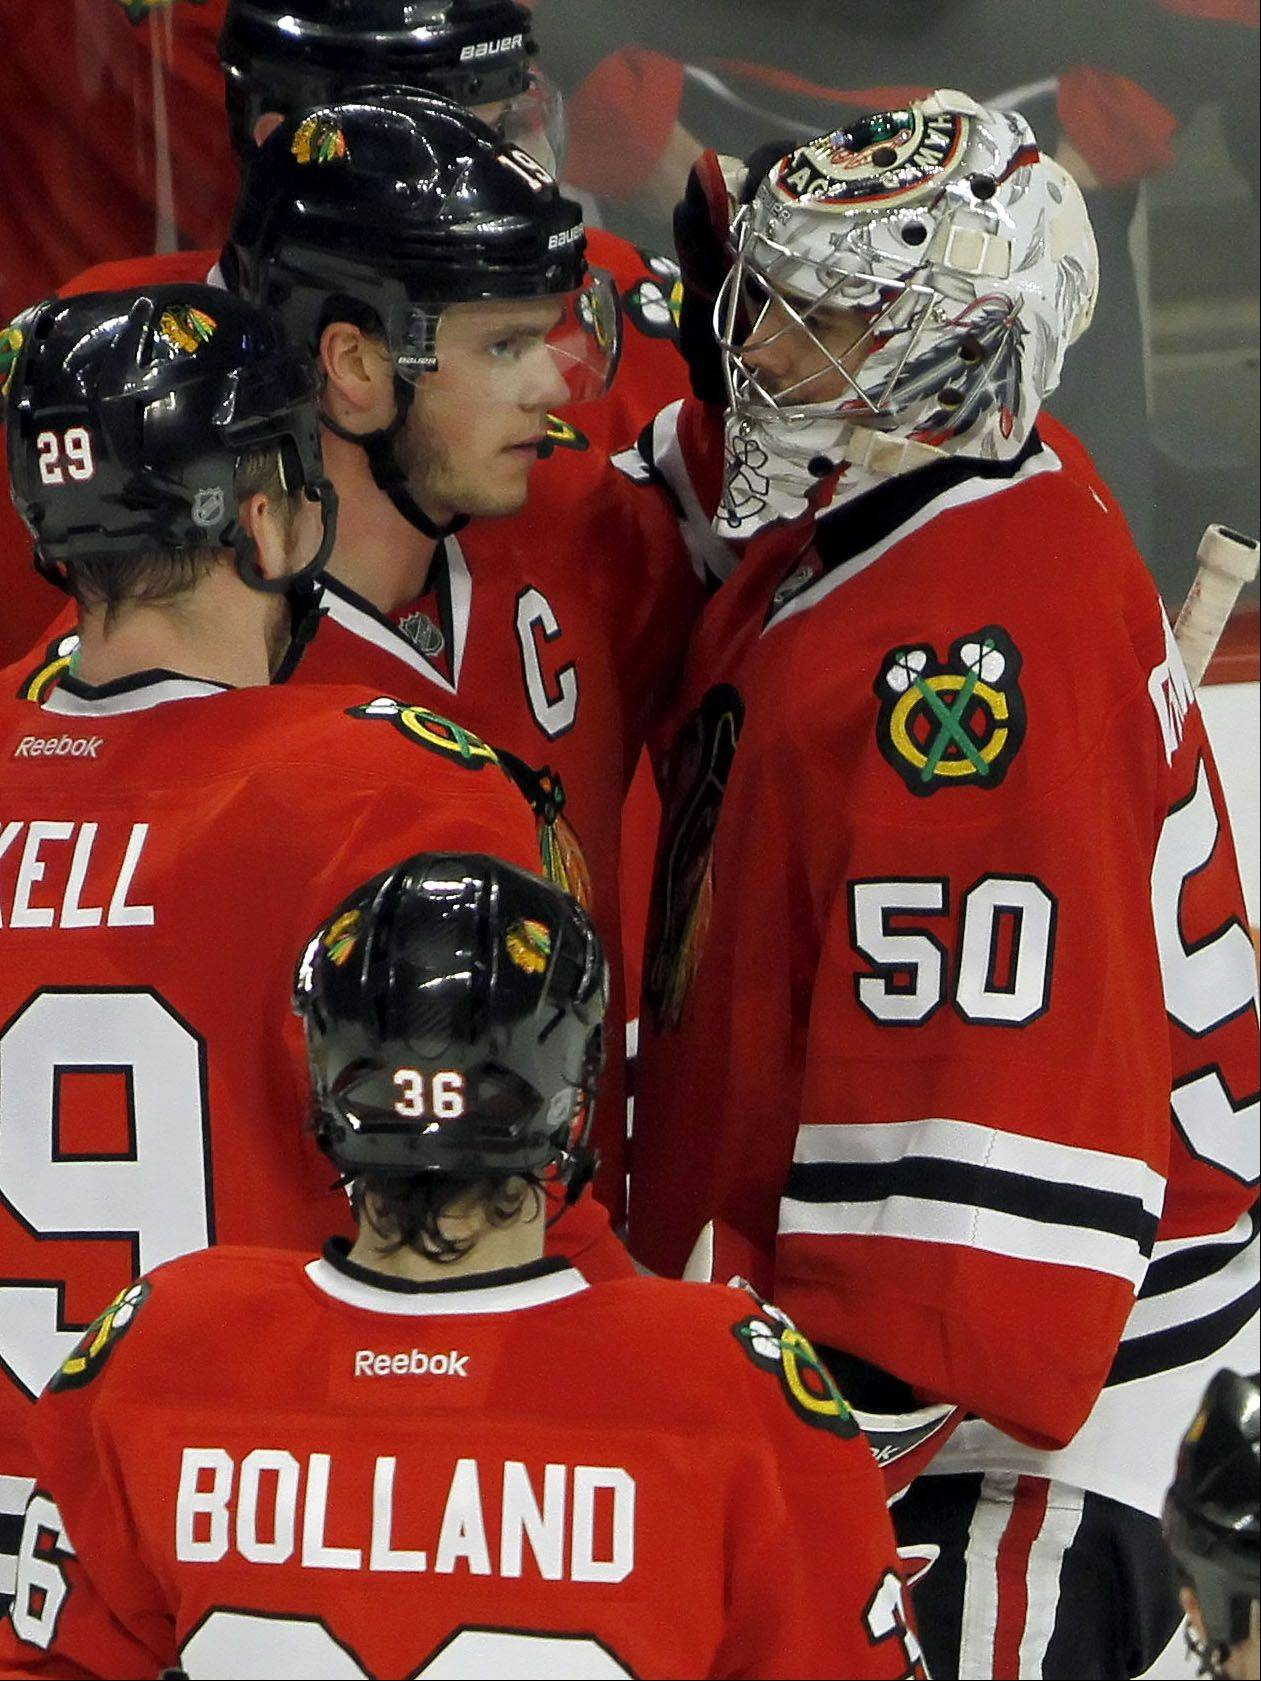 Chicago Blackhawks' center Jonathan Toews consoles goalie Corey Crawford.